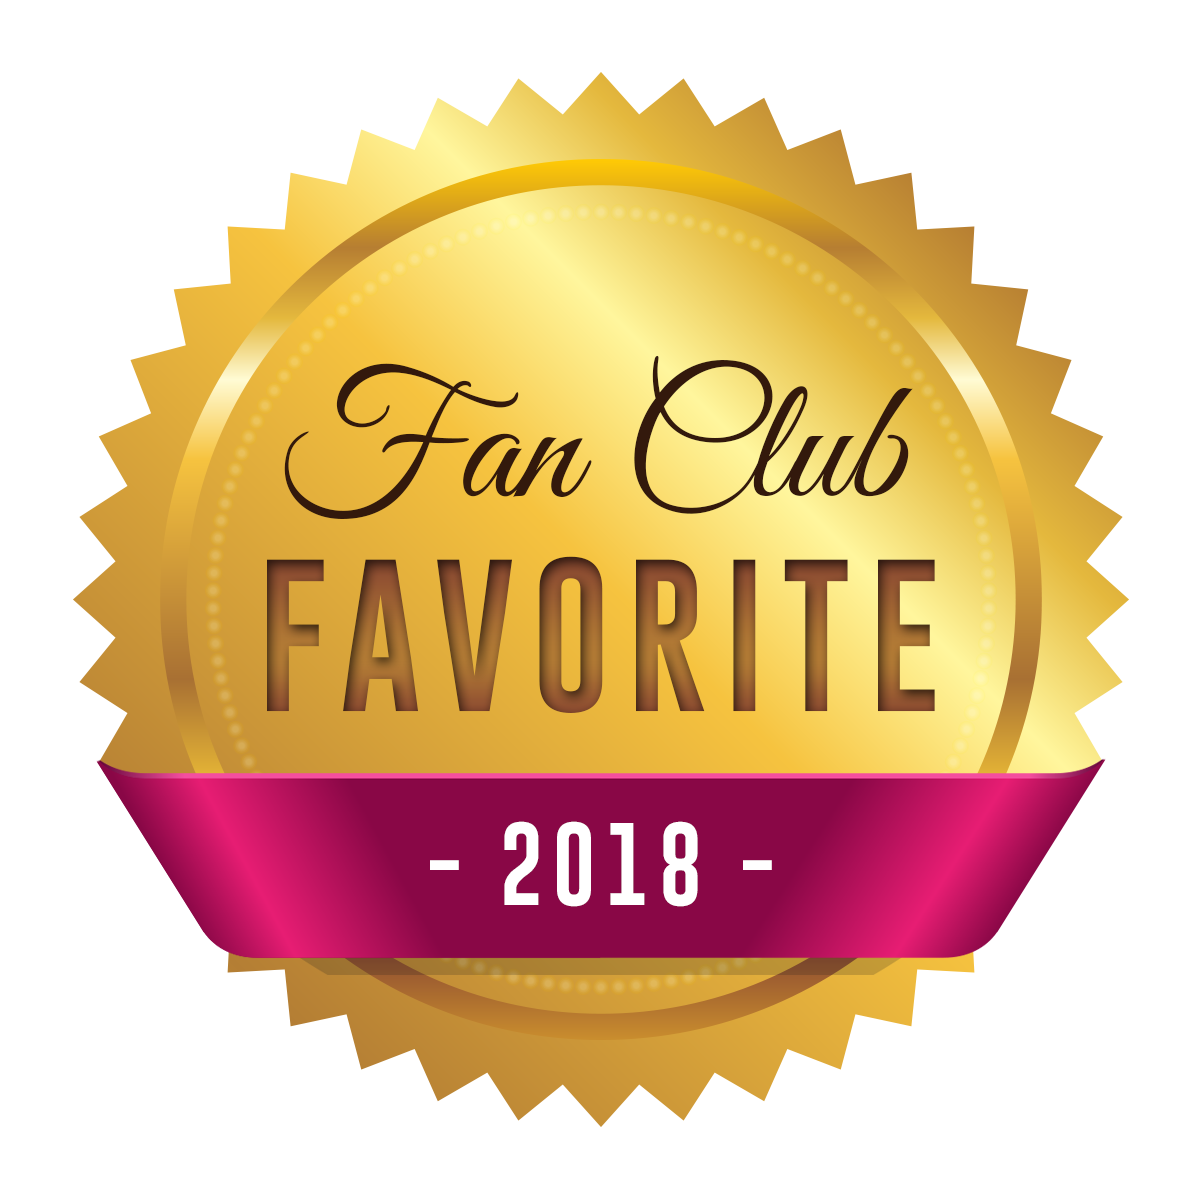 Fan Club Favorite 2018